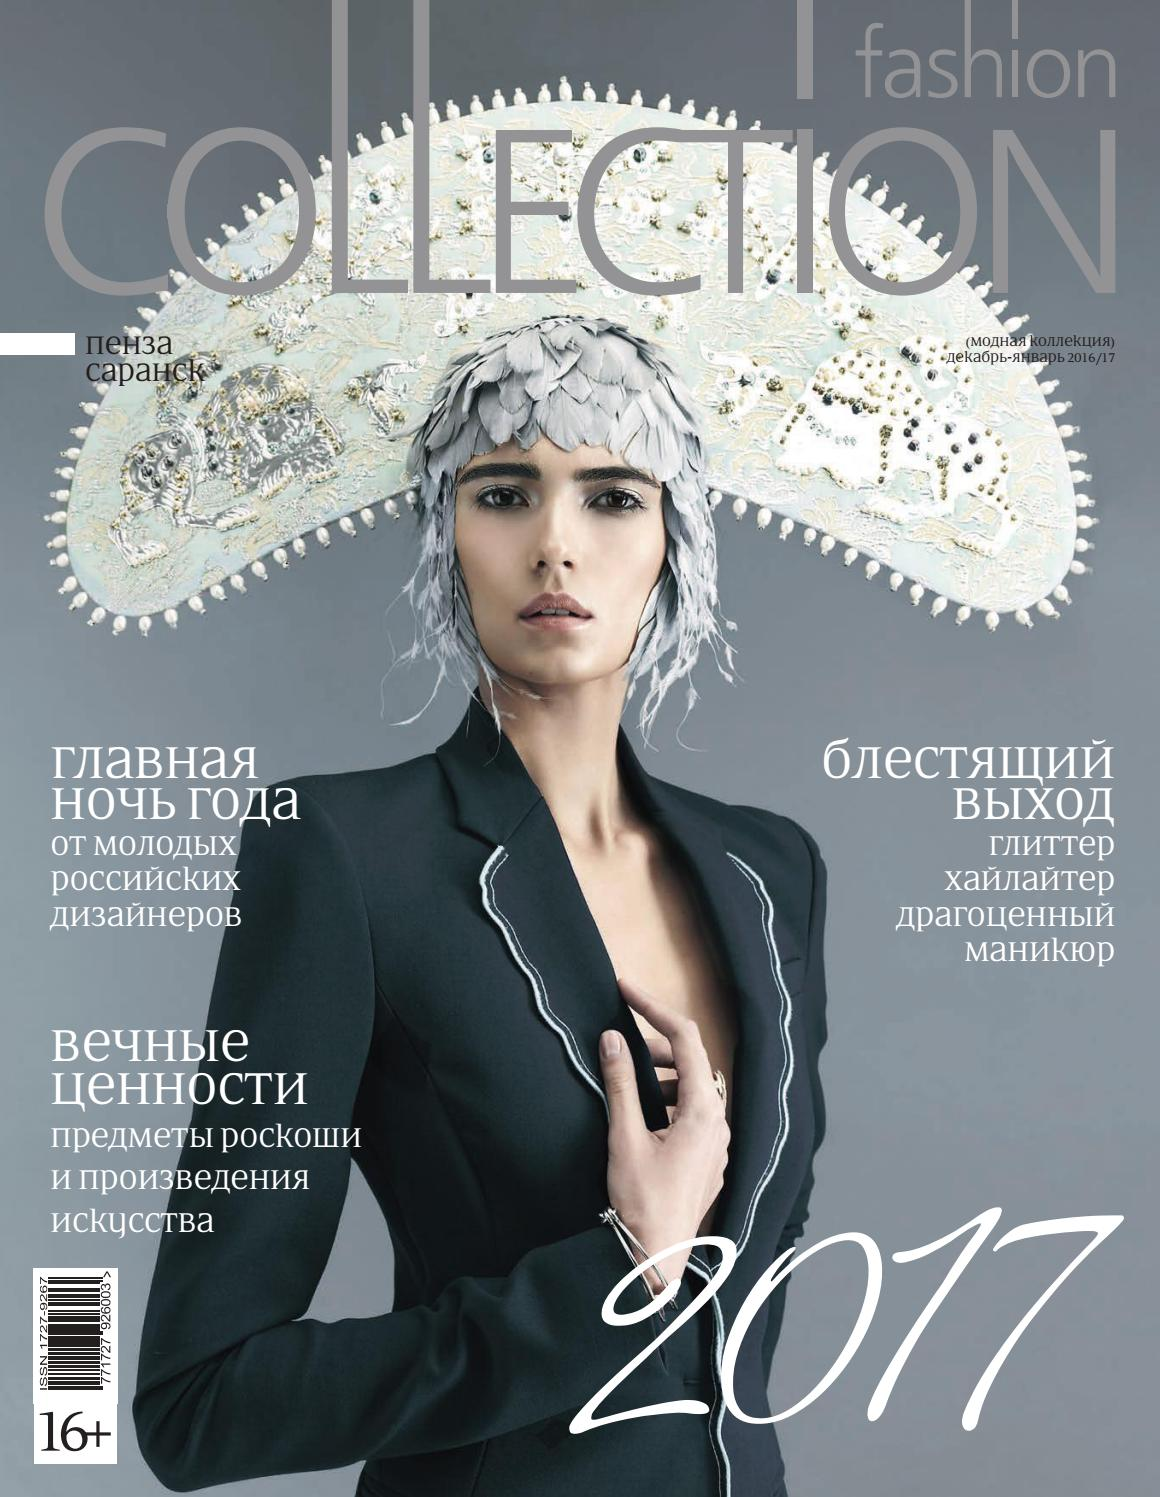 db3eb585e14 Fashion Collection Penza December 2016 by Fashion Collection Пенза - issuu